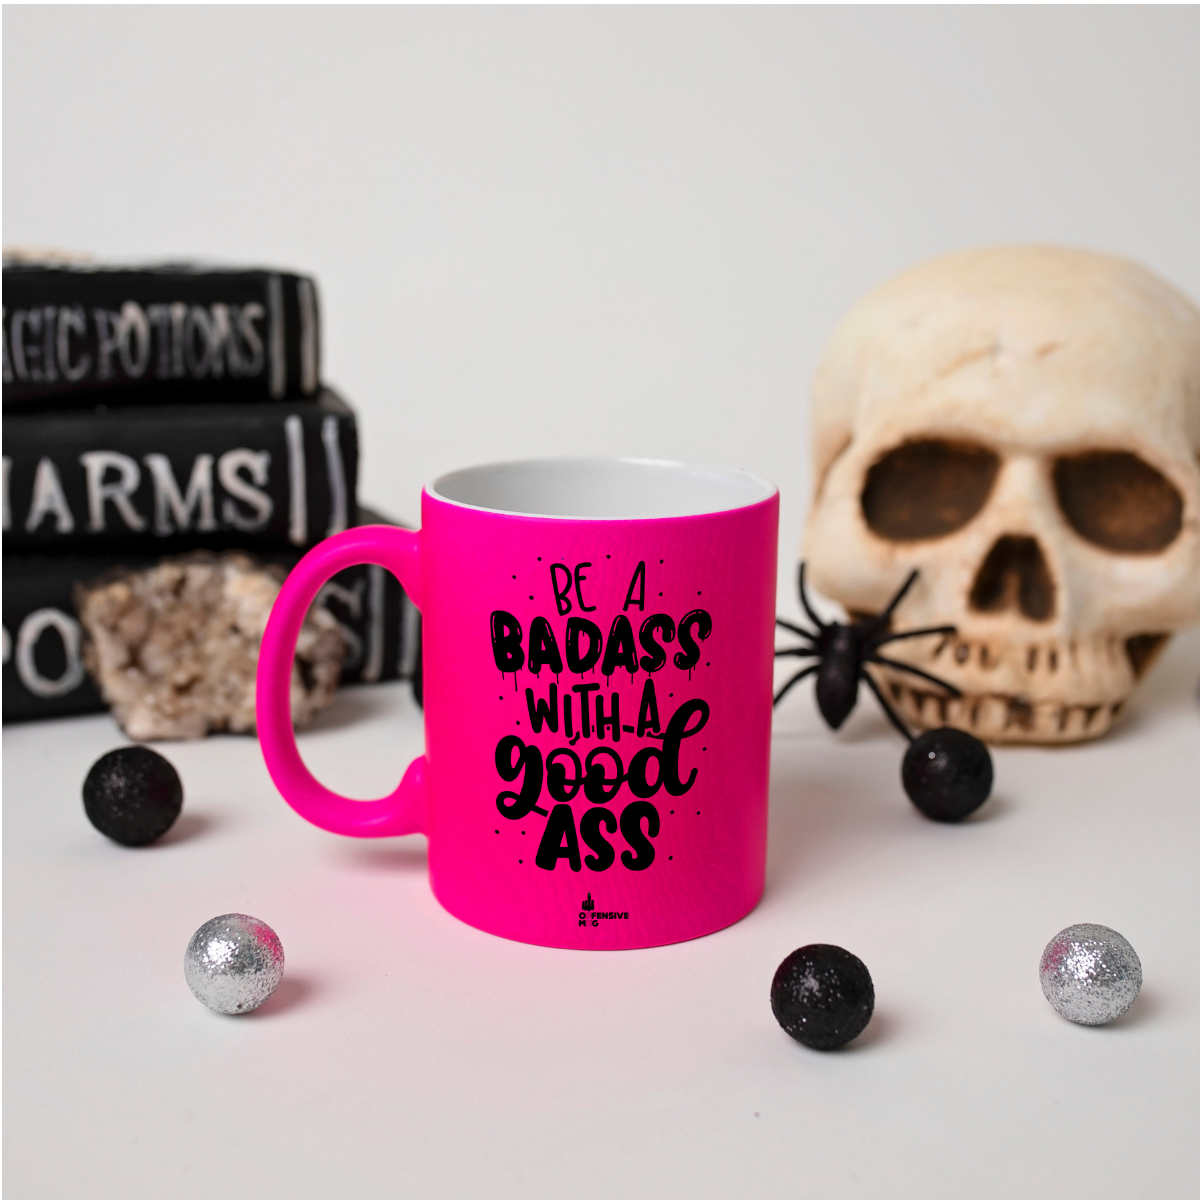 Makara Color Mug - Offensive Mug